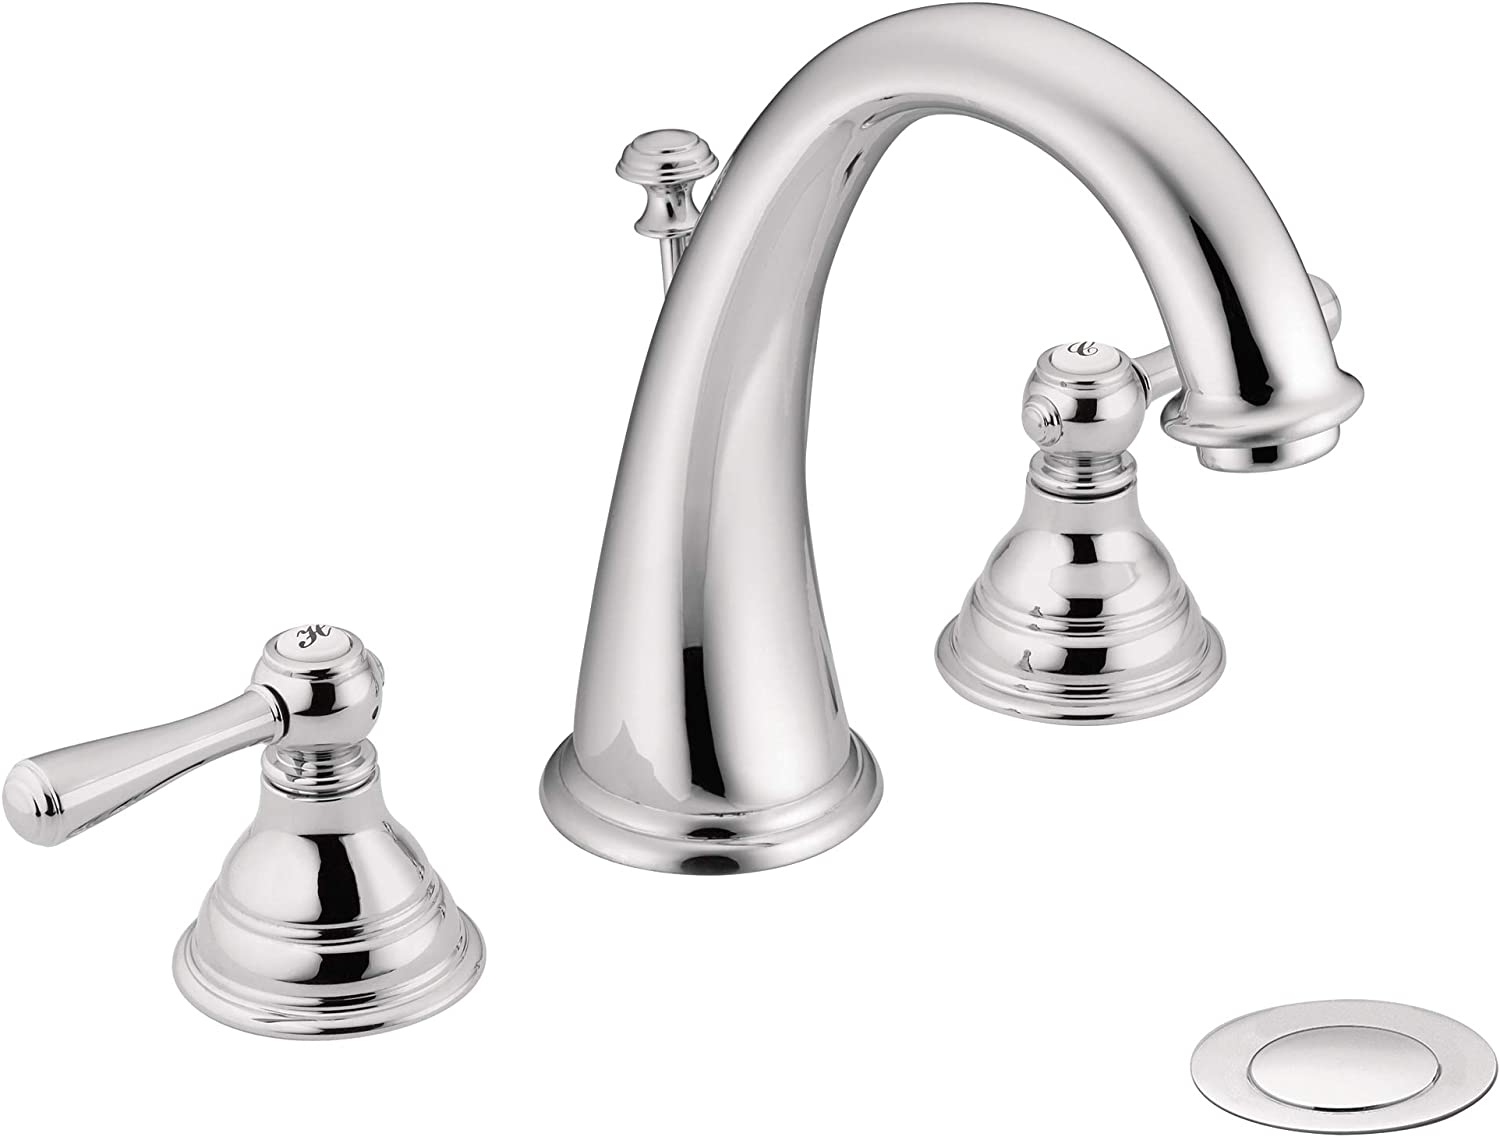 Moen T6125 Kingsley Two Handle Widespread High Arc Bathroom Faucet Valve Required Chrome Touch On Bathroom Sink Faucets Amazon Com